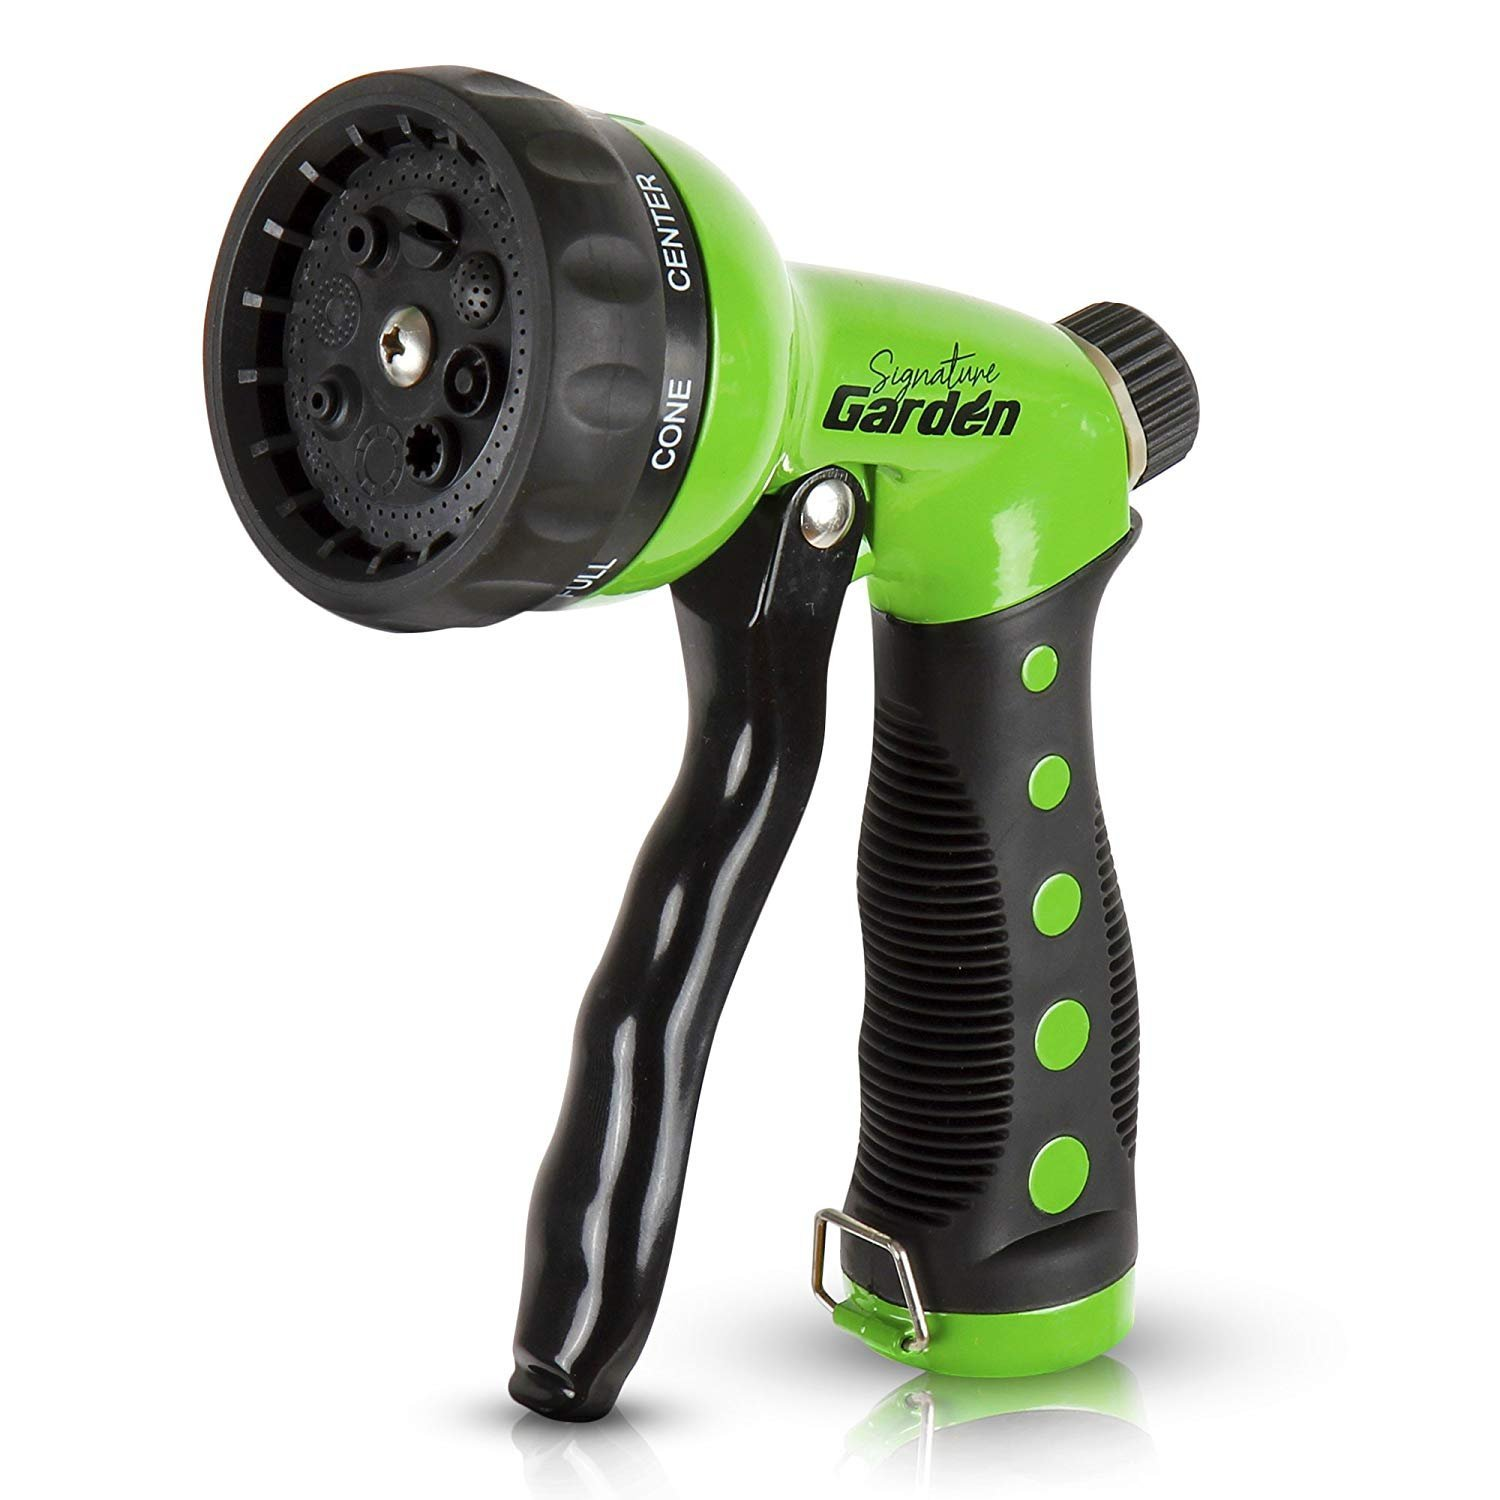 Signature Garden Heavy-Duty Spray Nozzle, Comfort-Grip 8 Different Patterns for Watering Lawns, Washing Cars and Pets